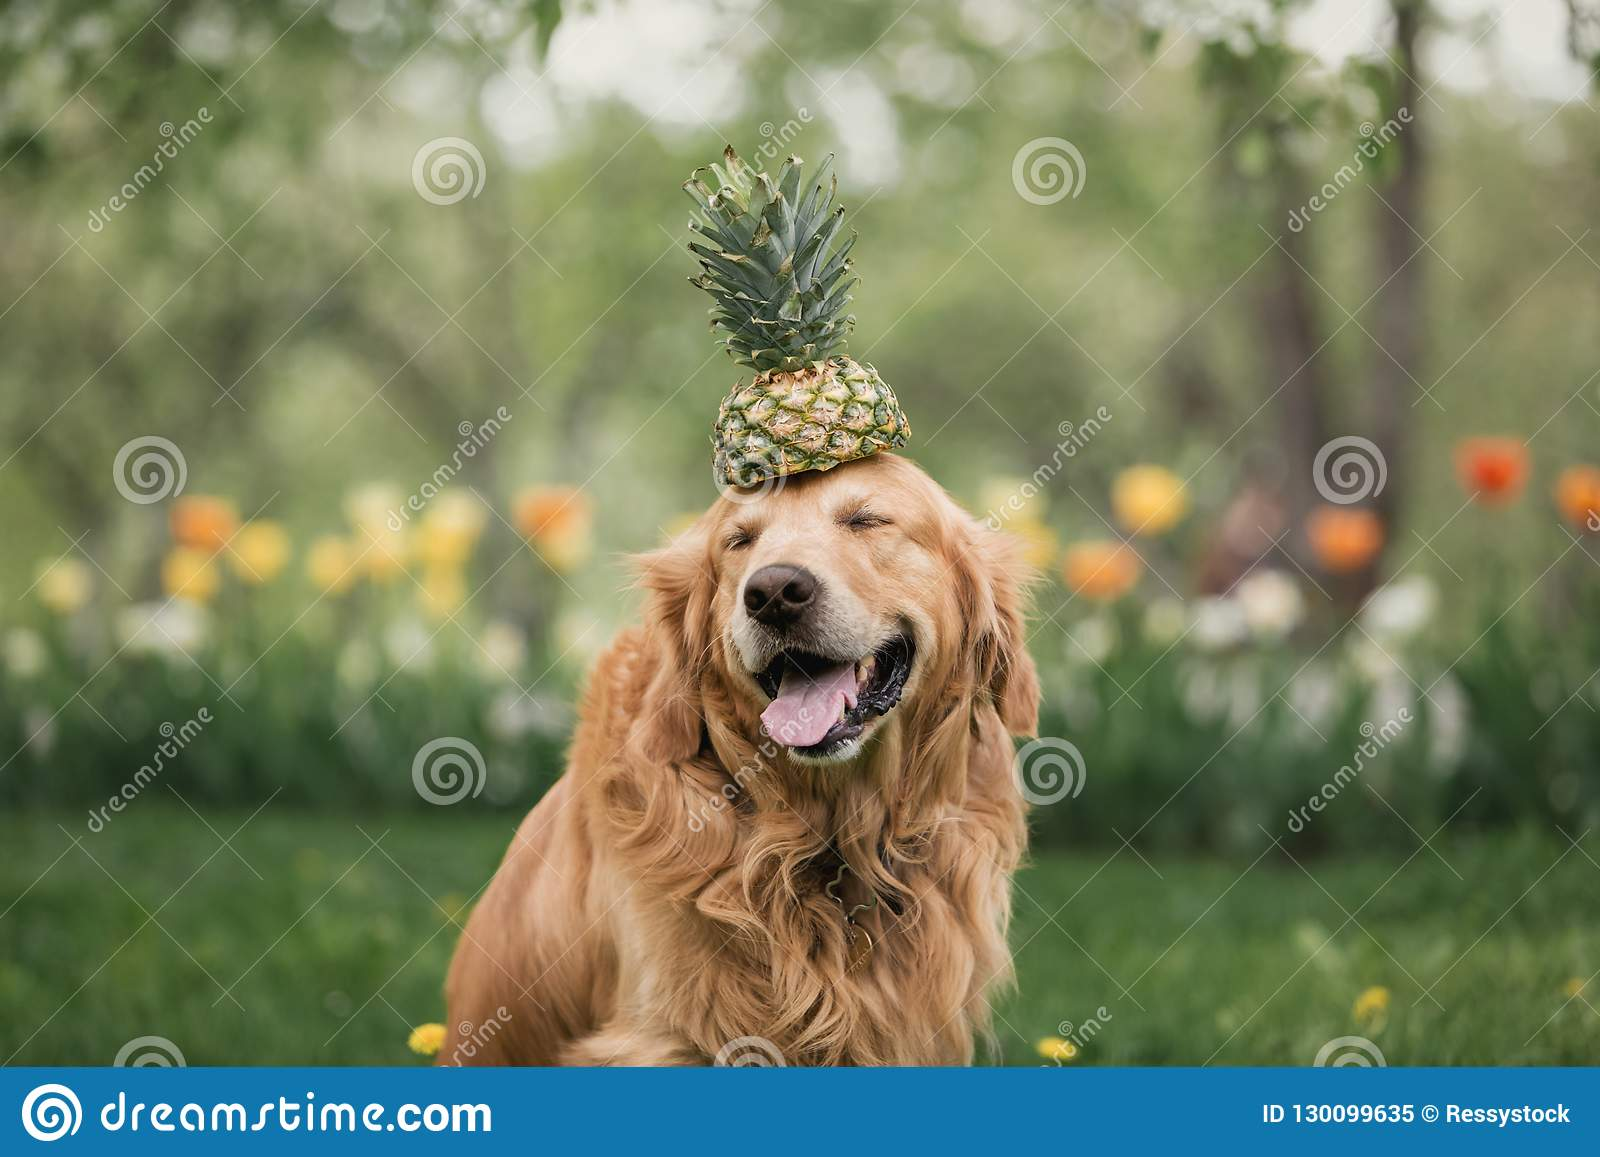 Smiling golden Retriever in flowers holds pineapple on the head